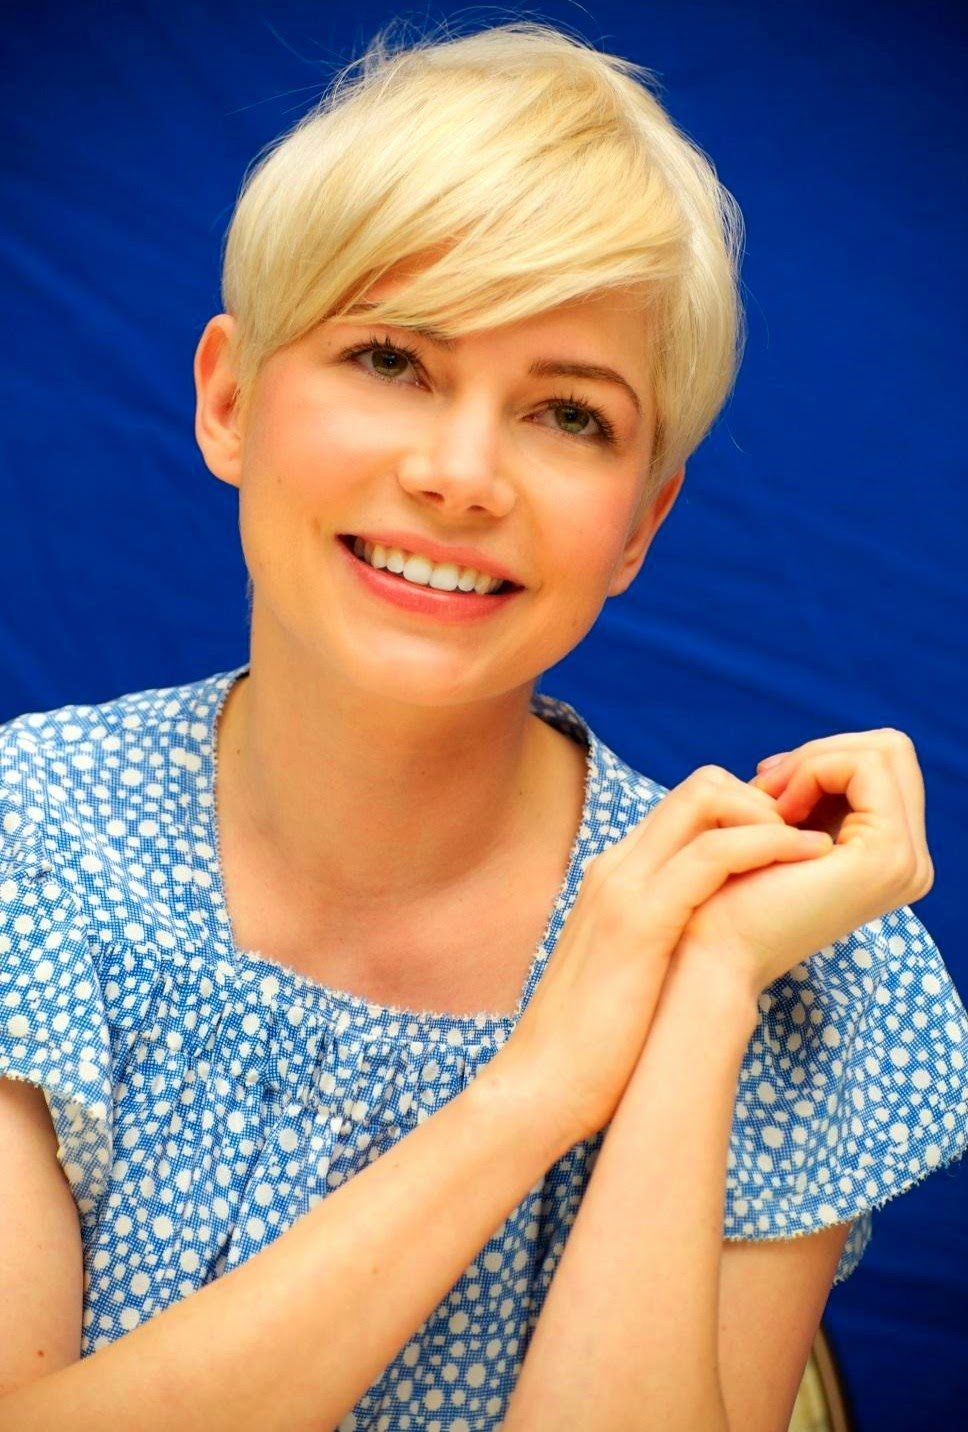 cinemaobsession Michelle Williams Actress